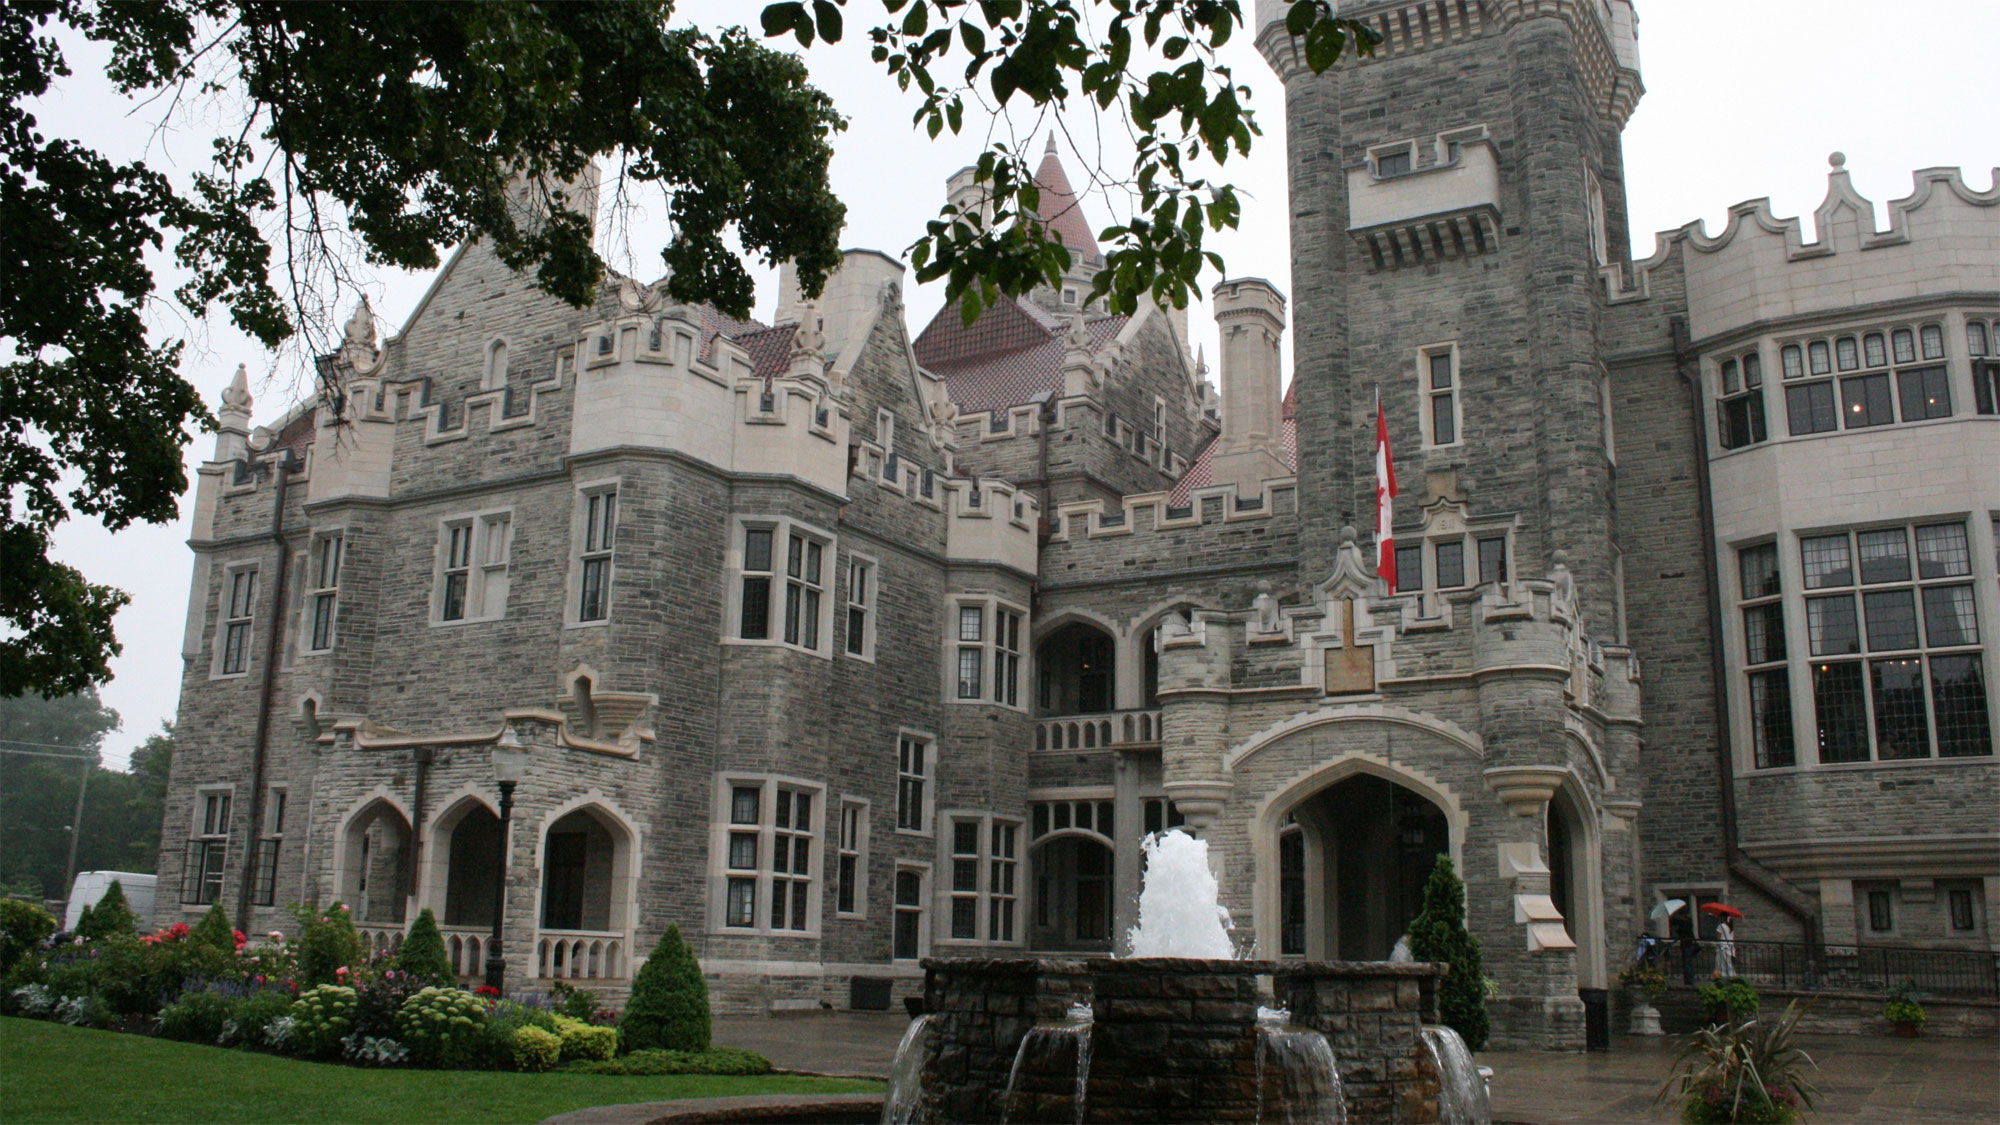 Casa Loma in Toronto. Photo via Wikipedia/Creative Commons/Maria Carmen.